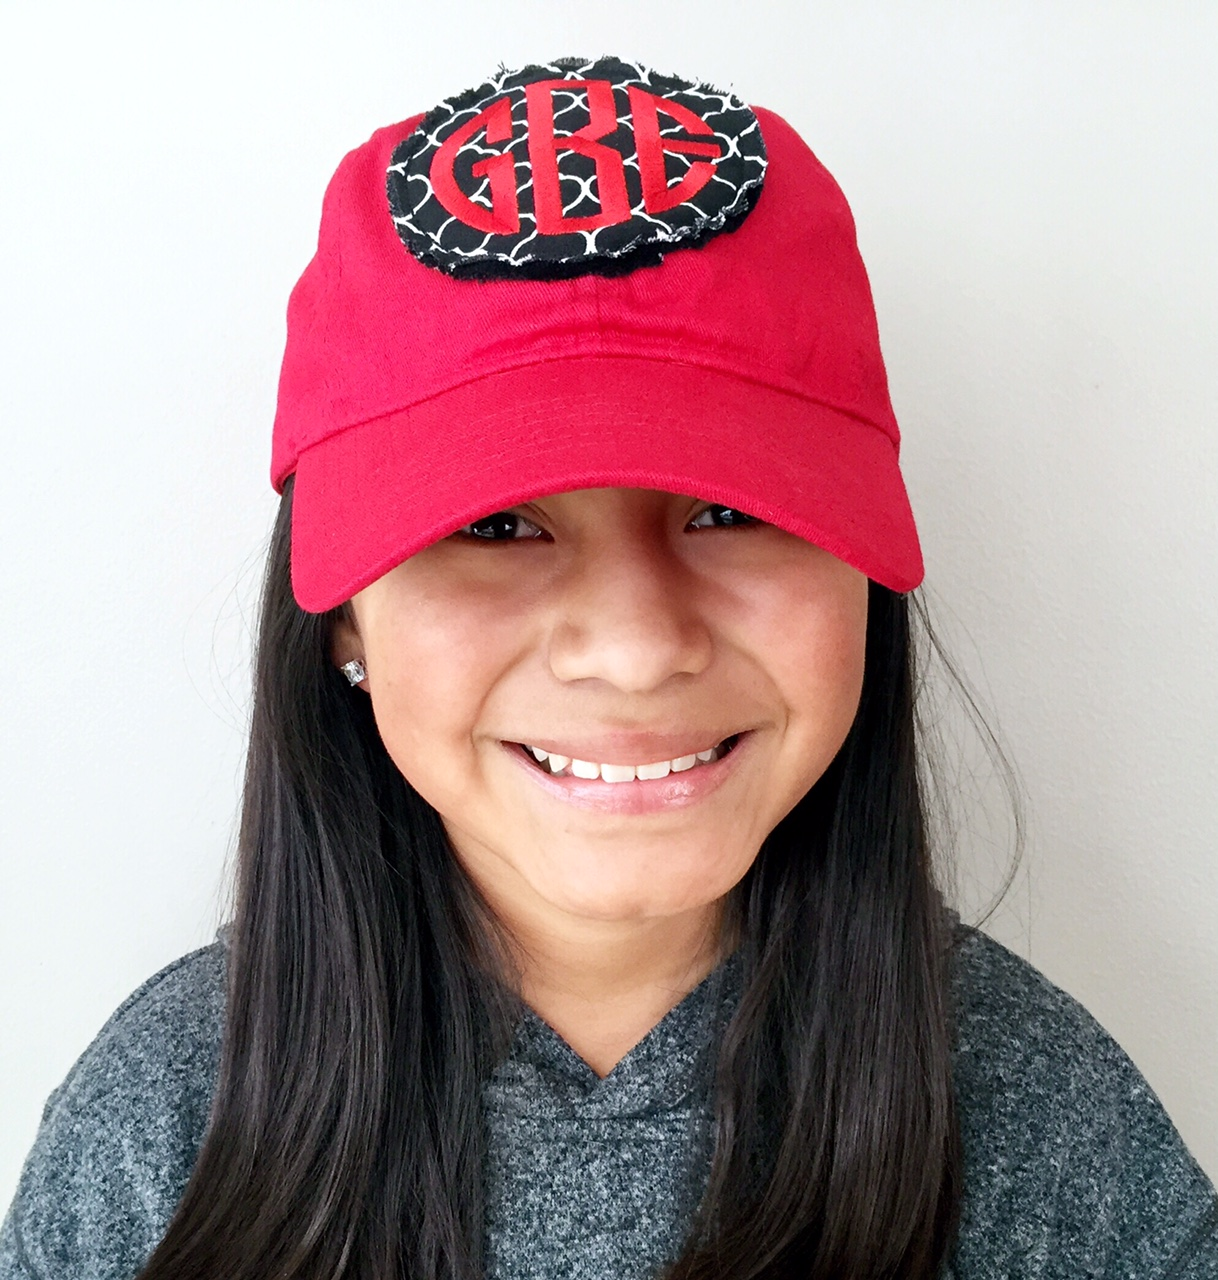 raggy patch monogrammed baseball hat